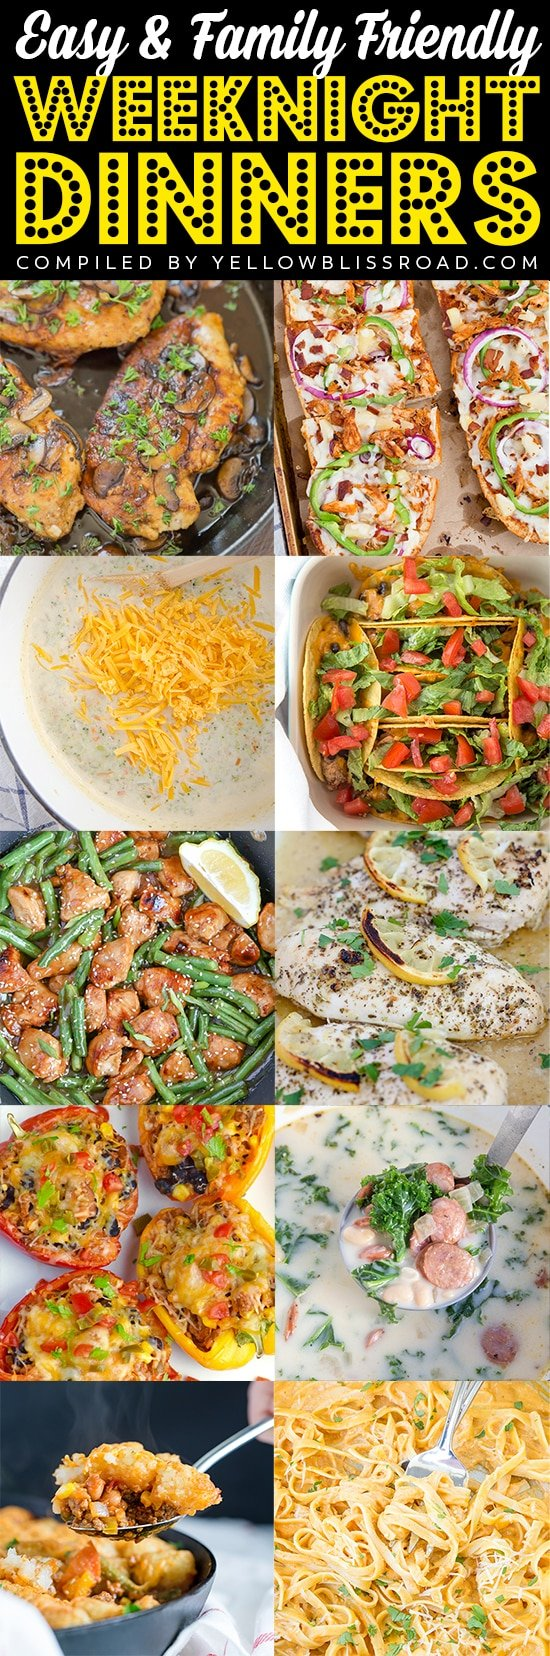 easy family friendly dinner recipes collage